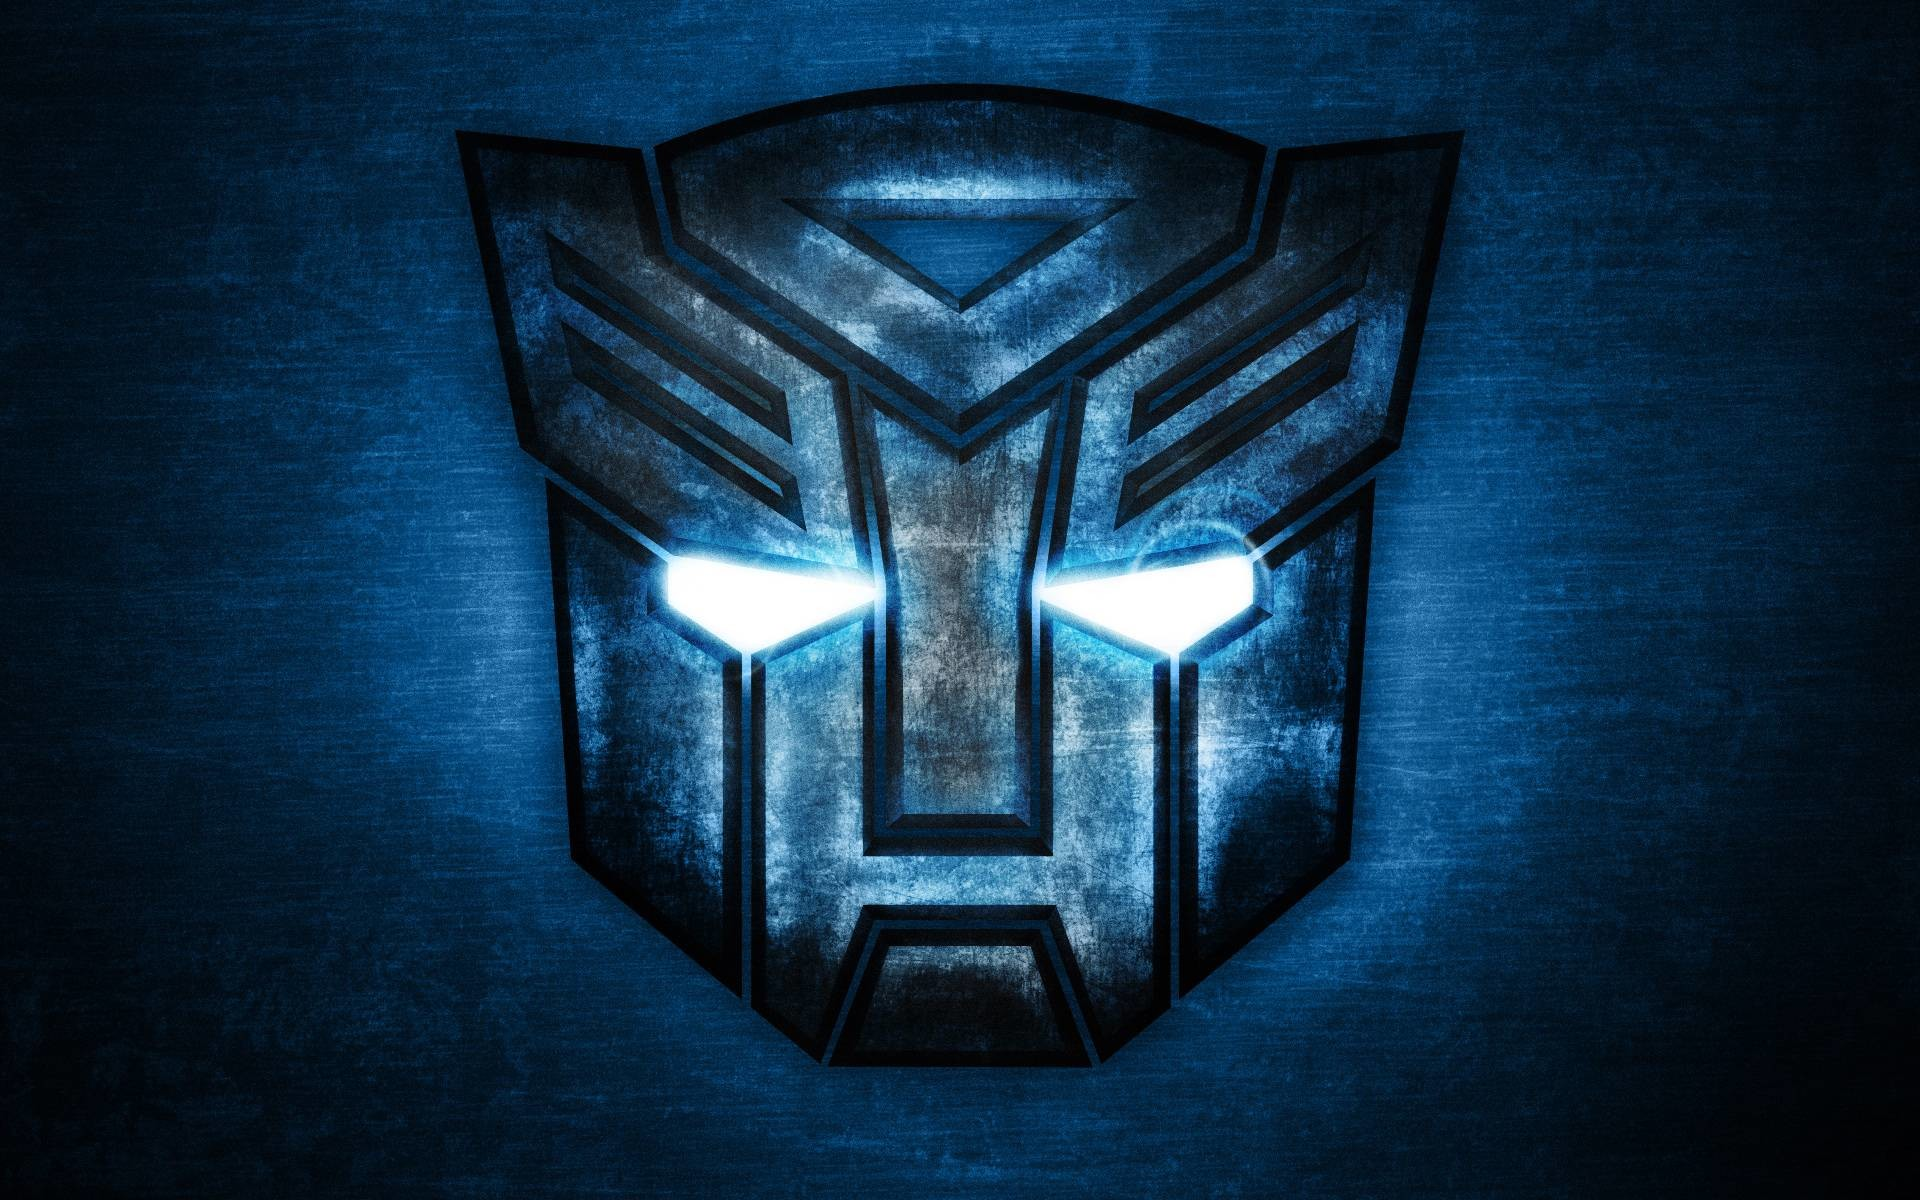 1920x1200 Autobot Logo Desktop Wallpaper 50881